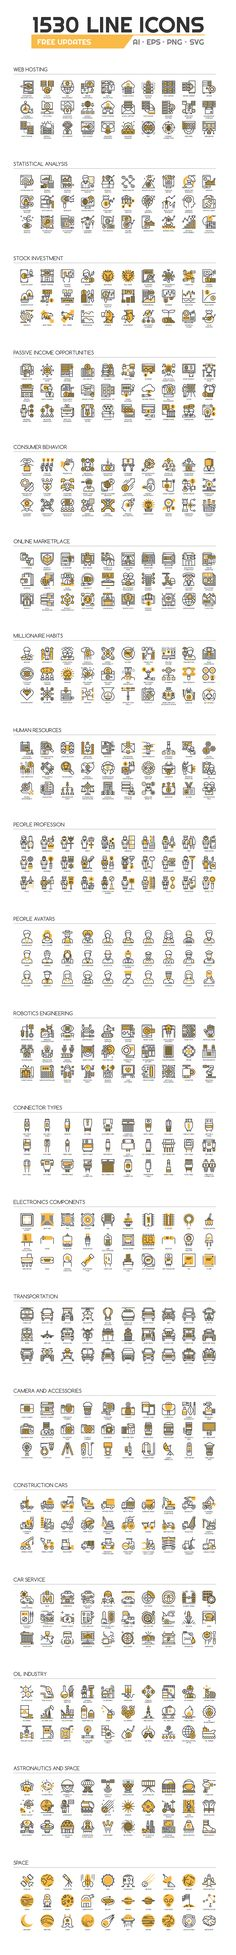 1530 UNIQUE LINE ICONS by eucalyp on @creativemarket